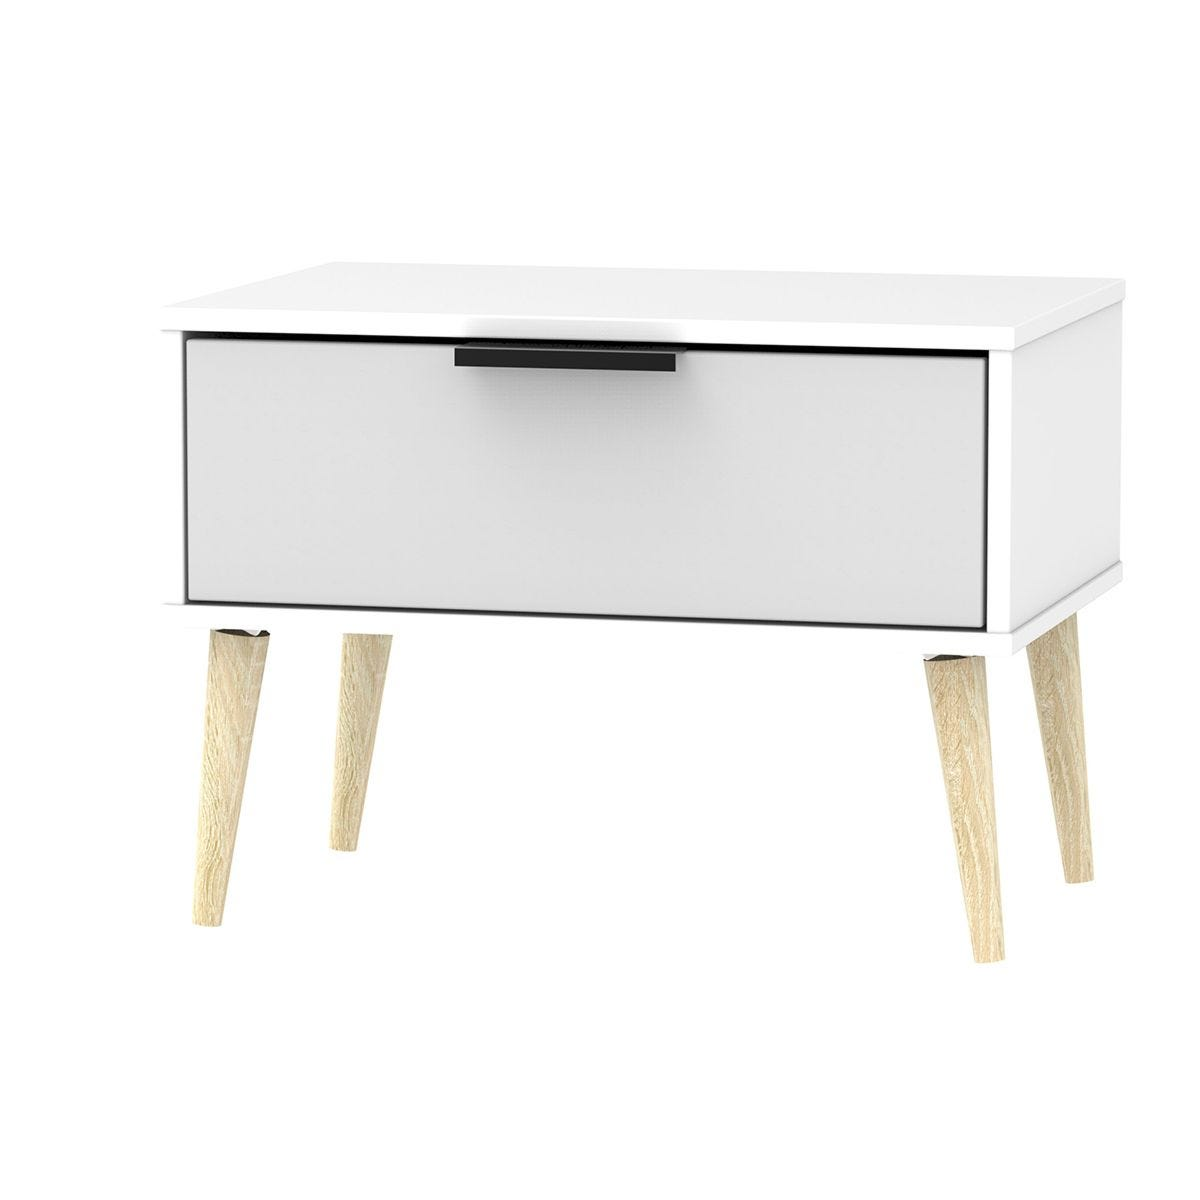 Hirato 1 Drawer Grey/White Midi Chest With Black Hairpin Legs